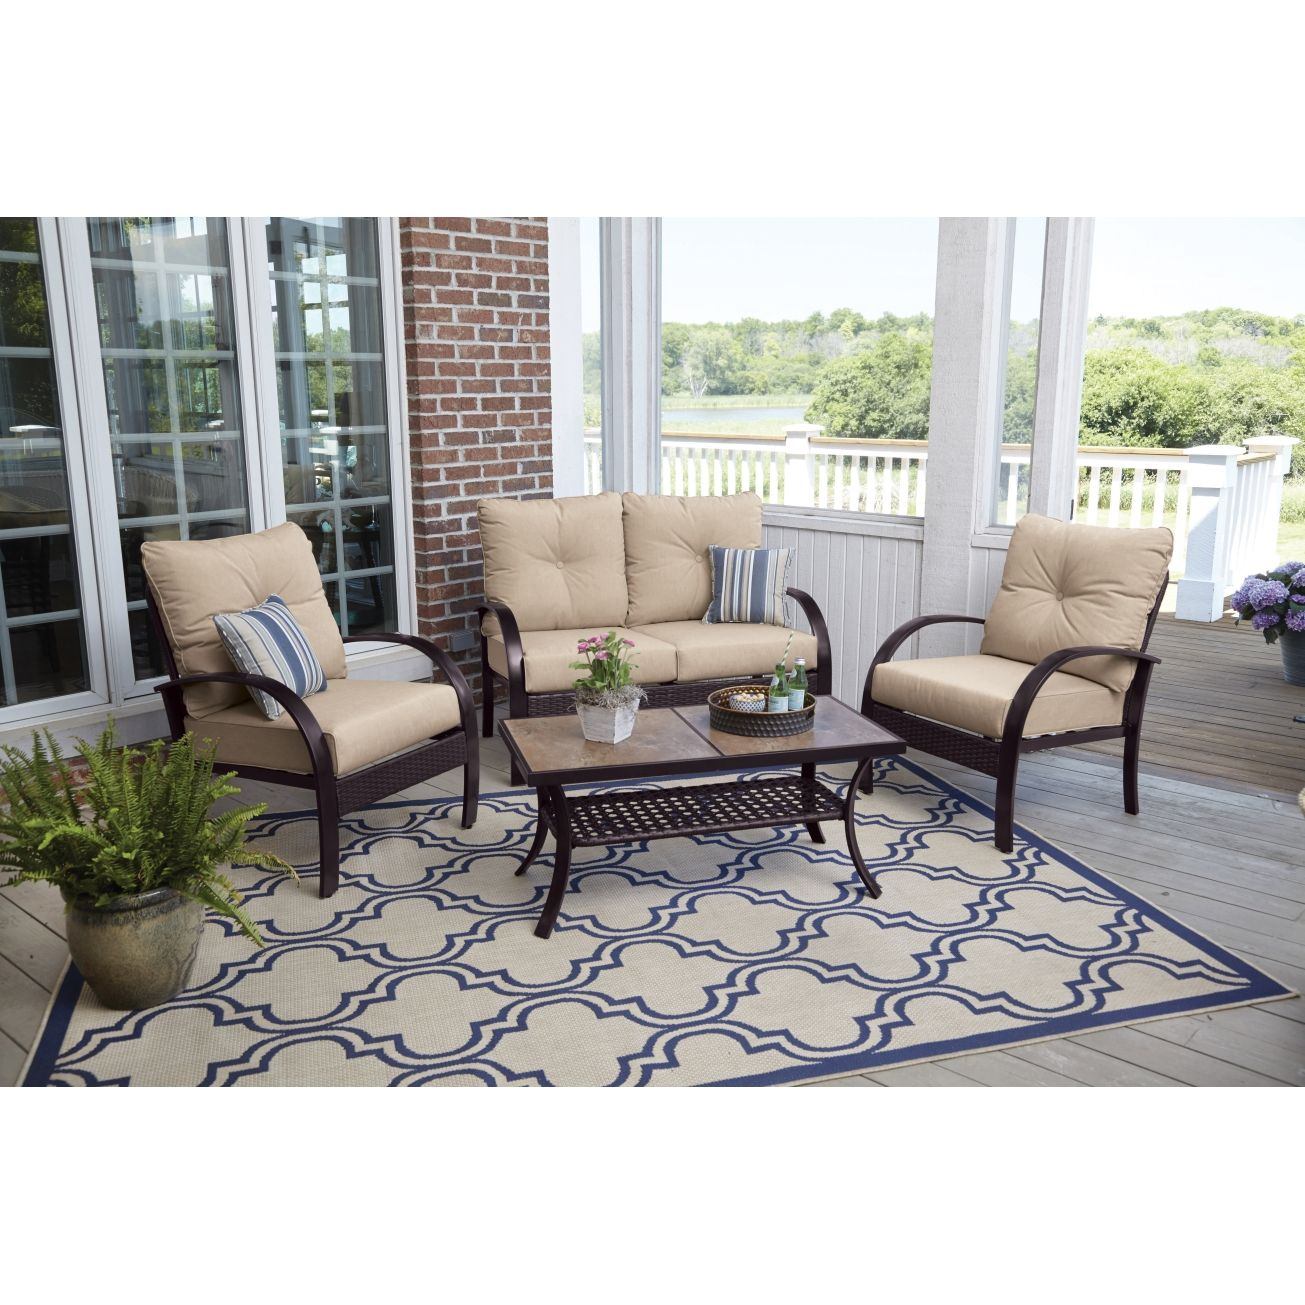 Living Accents Ballina Seating Set 4 pc. - All Patio ... on Ace Outdoor Living id=52989